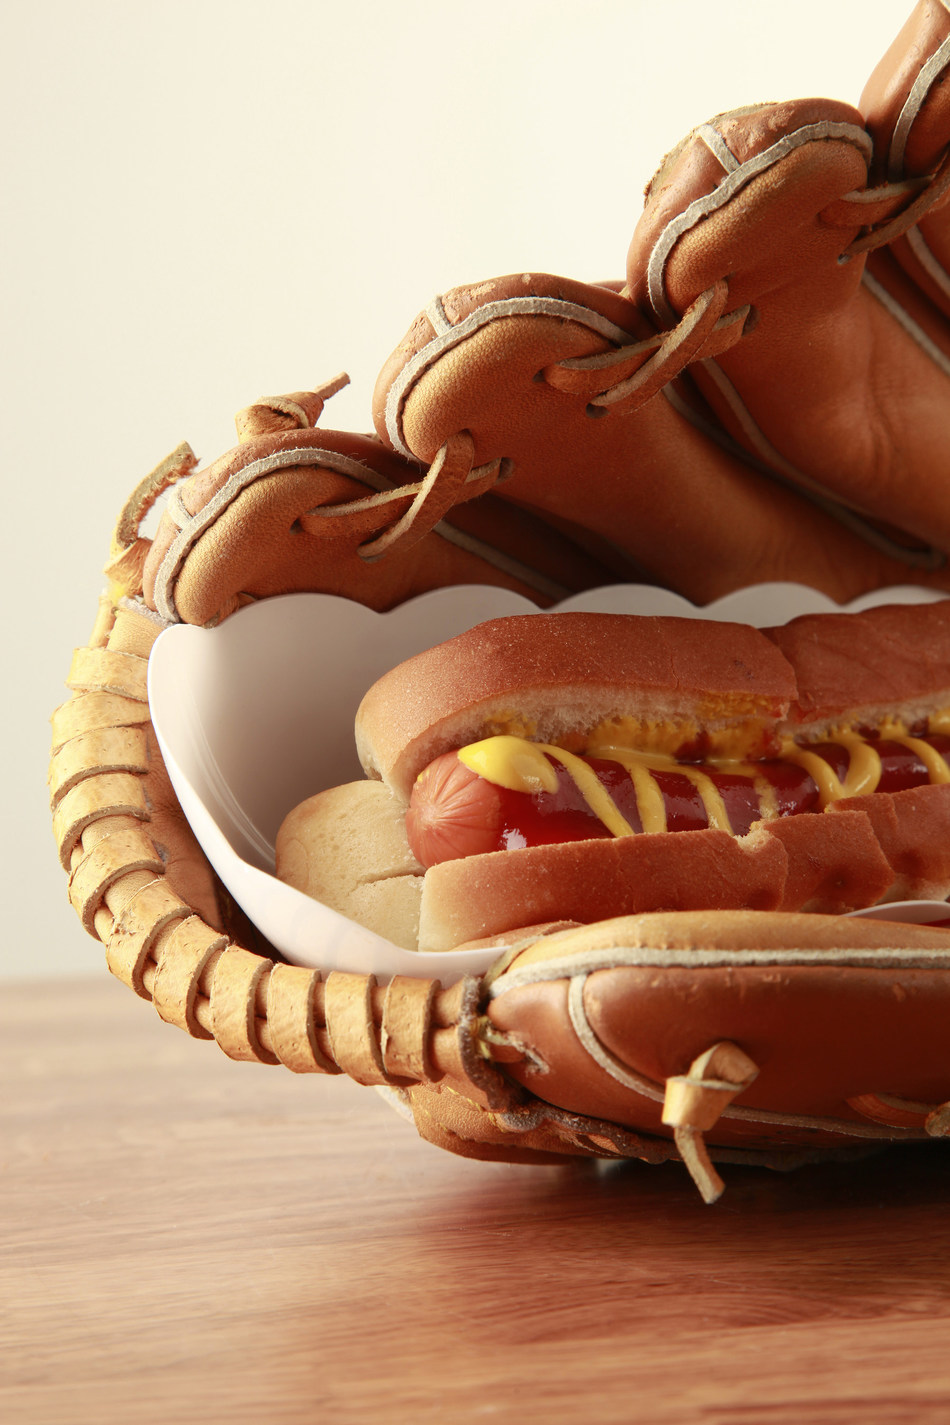 Hot Dogs and Baseball are a Perfect Pair